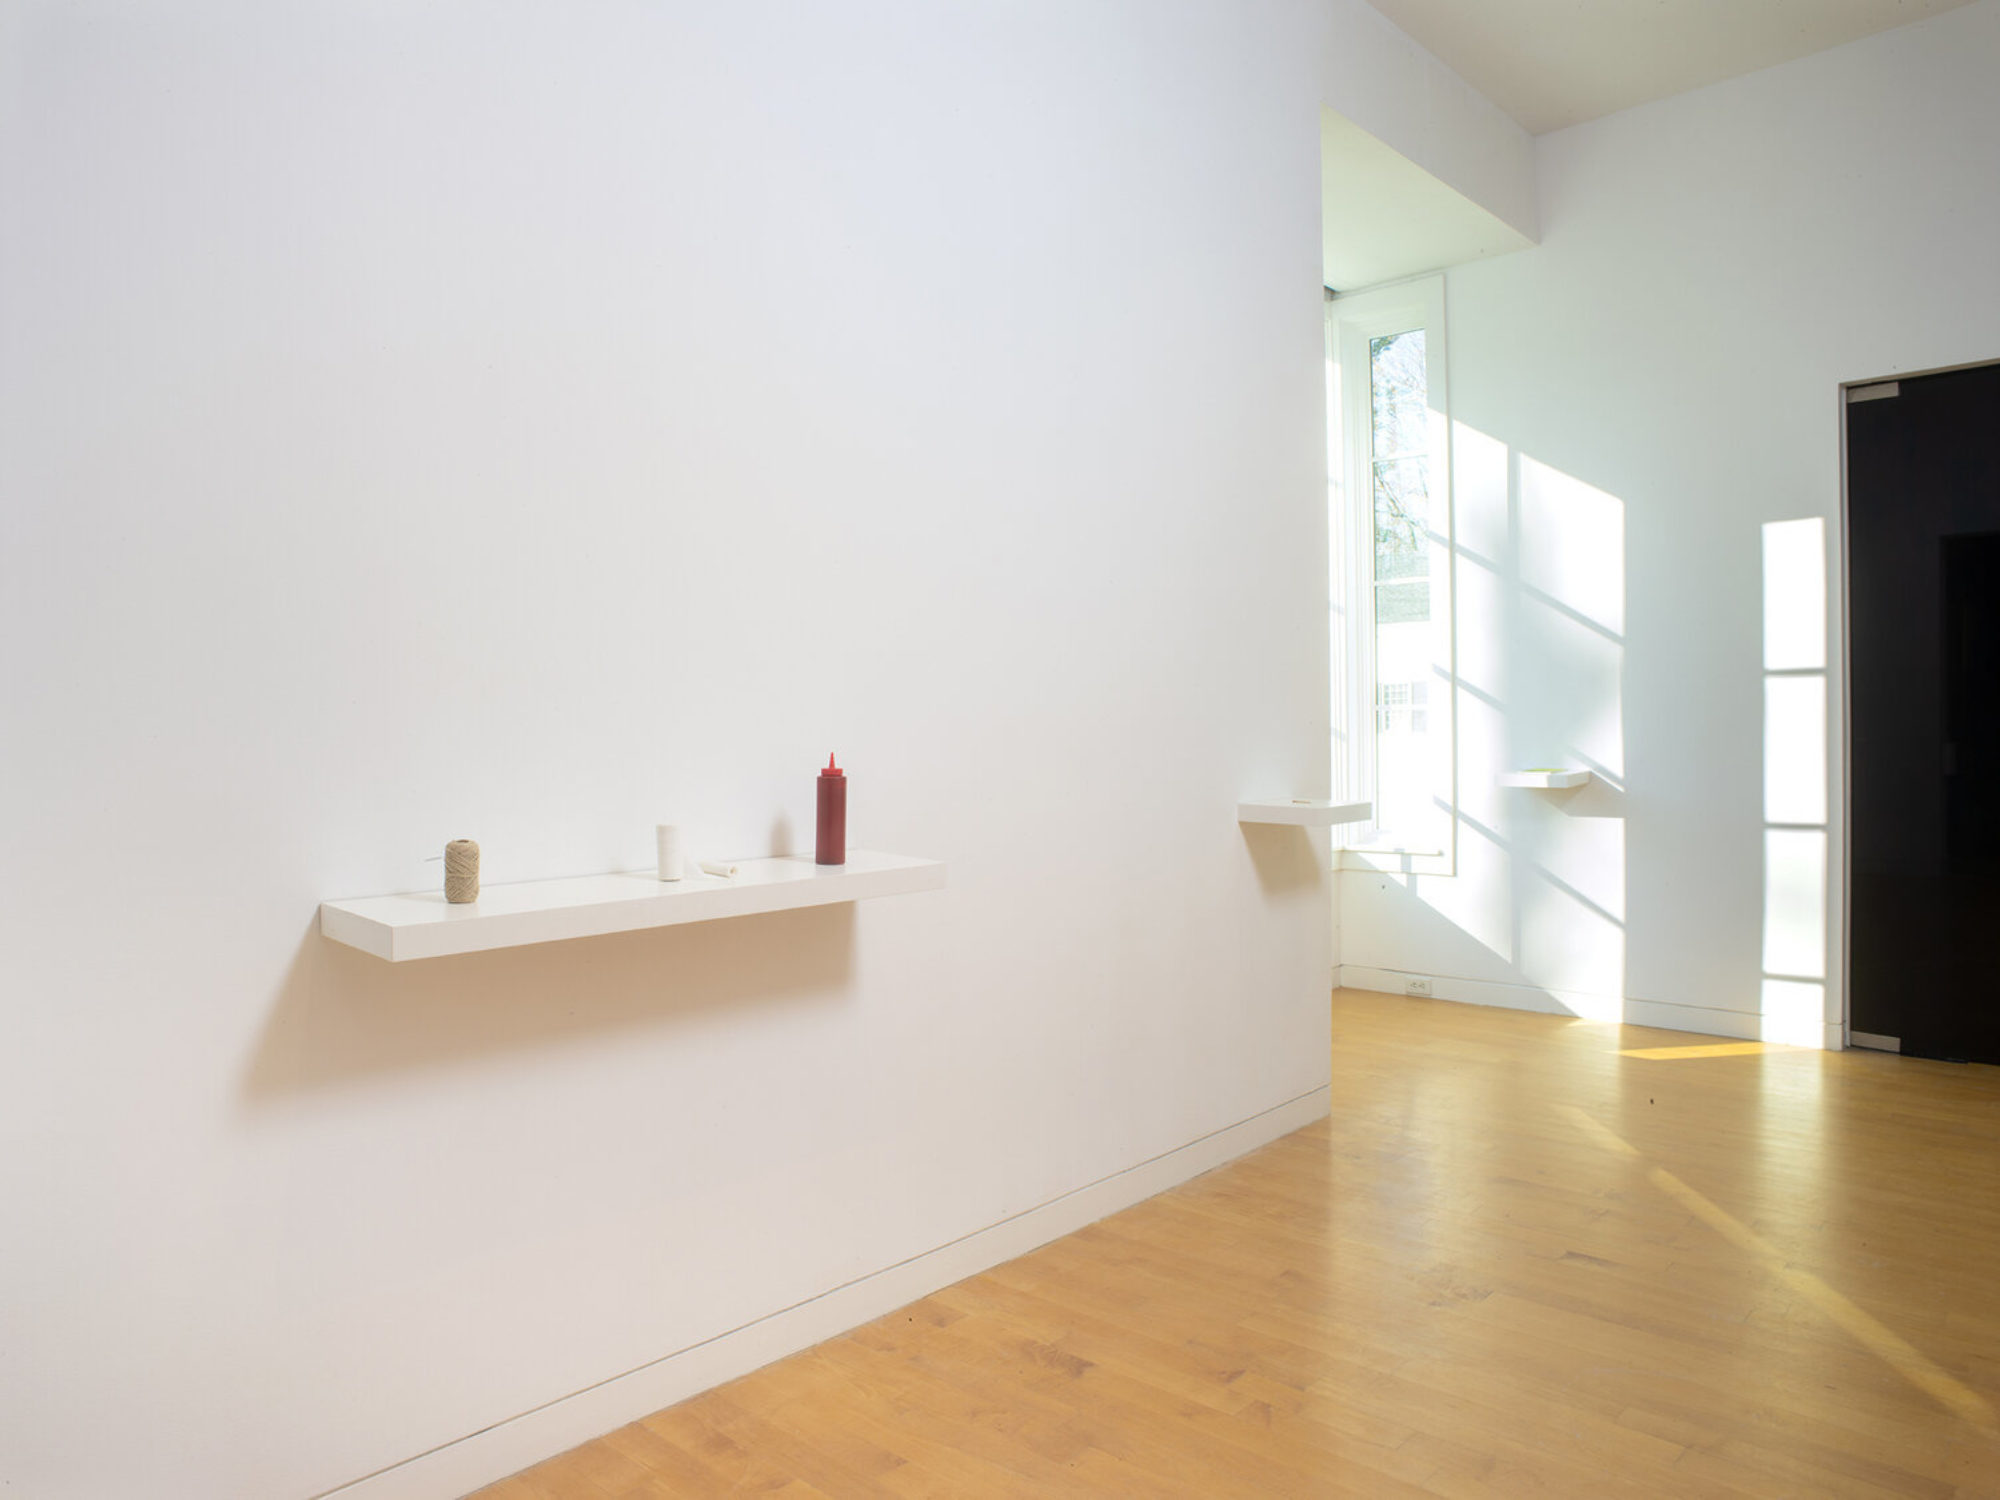 Three small objects sit on a white shelf in the gallery